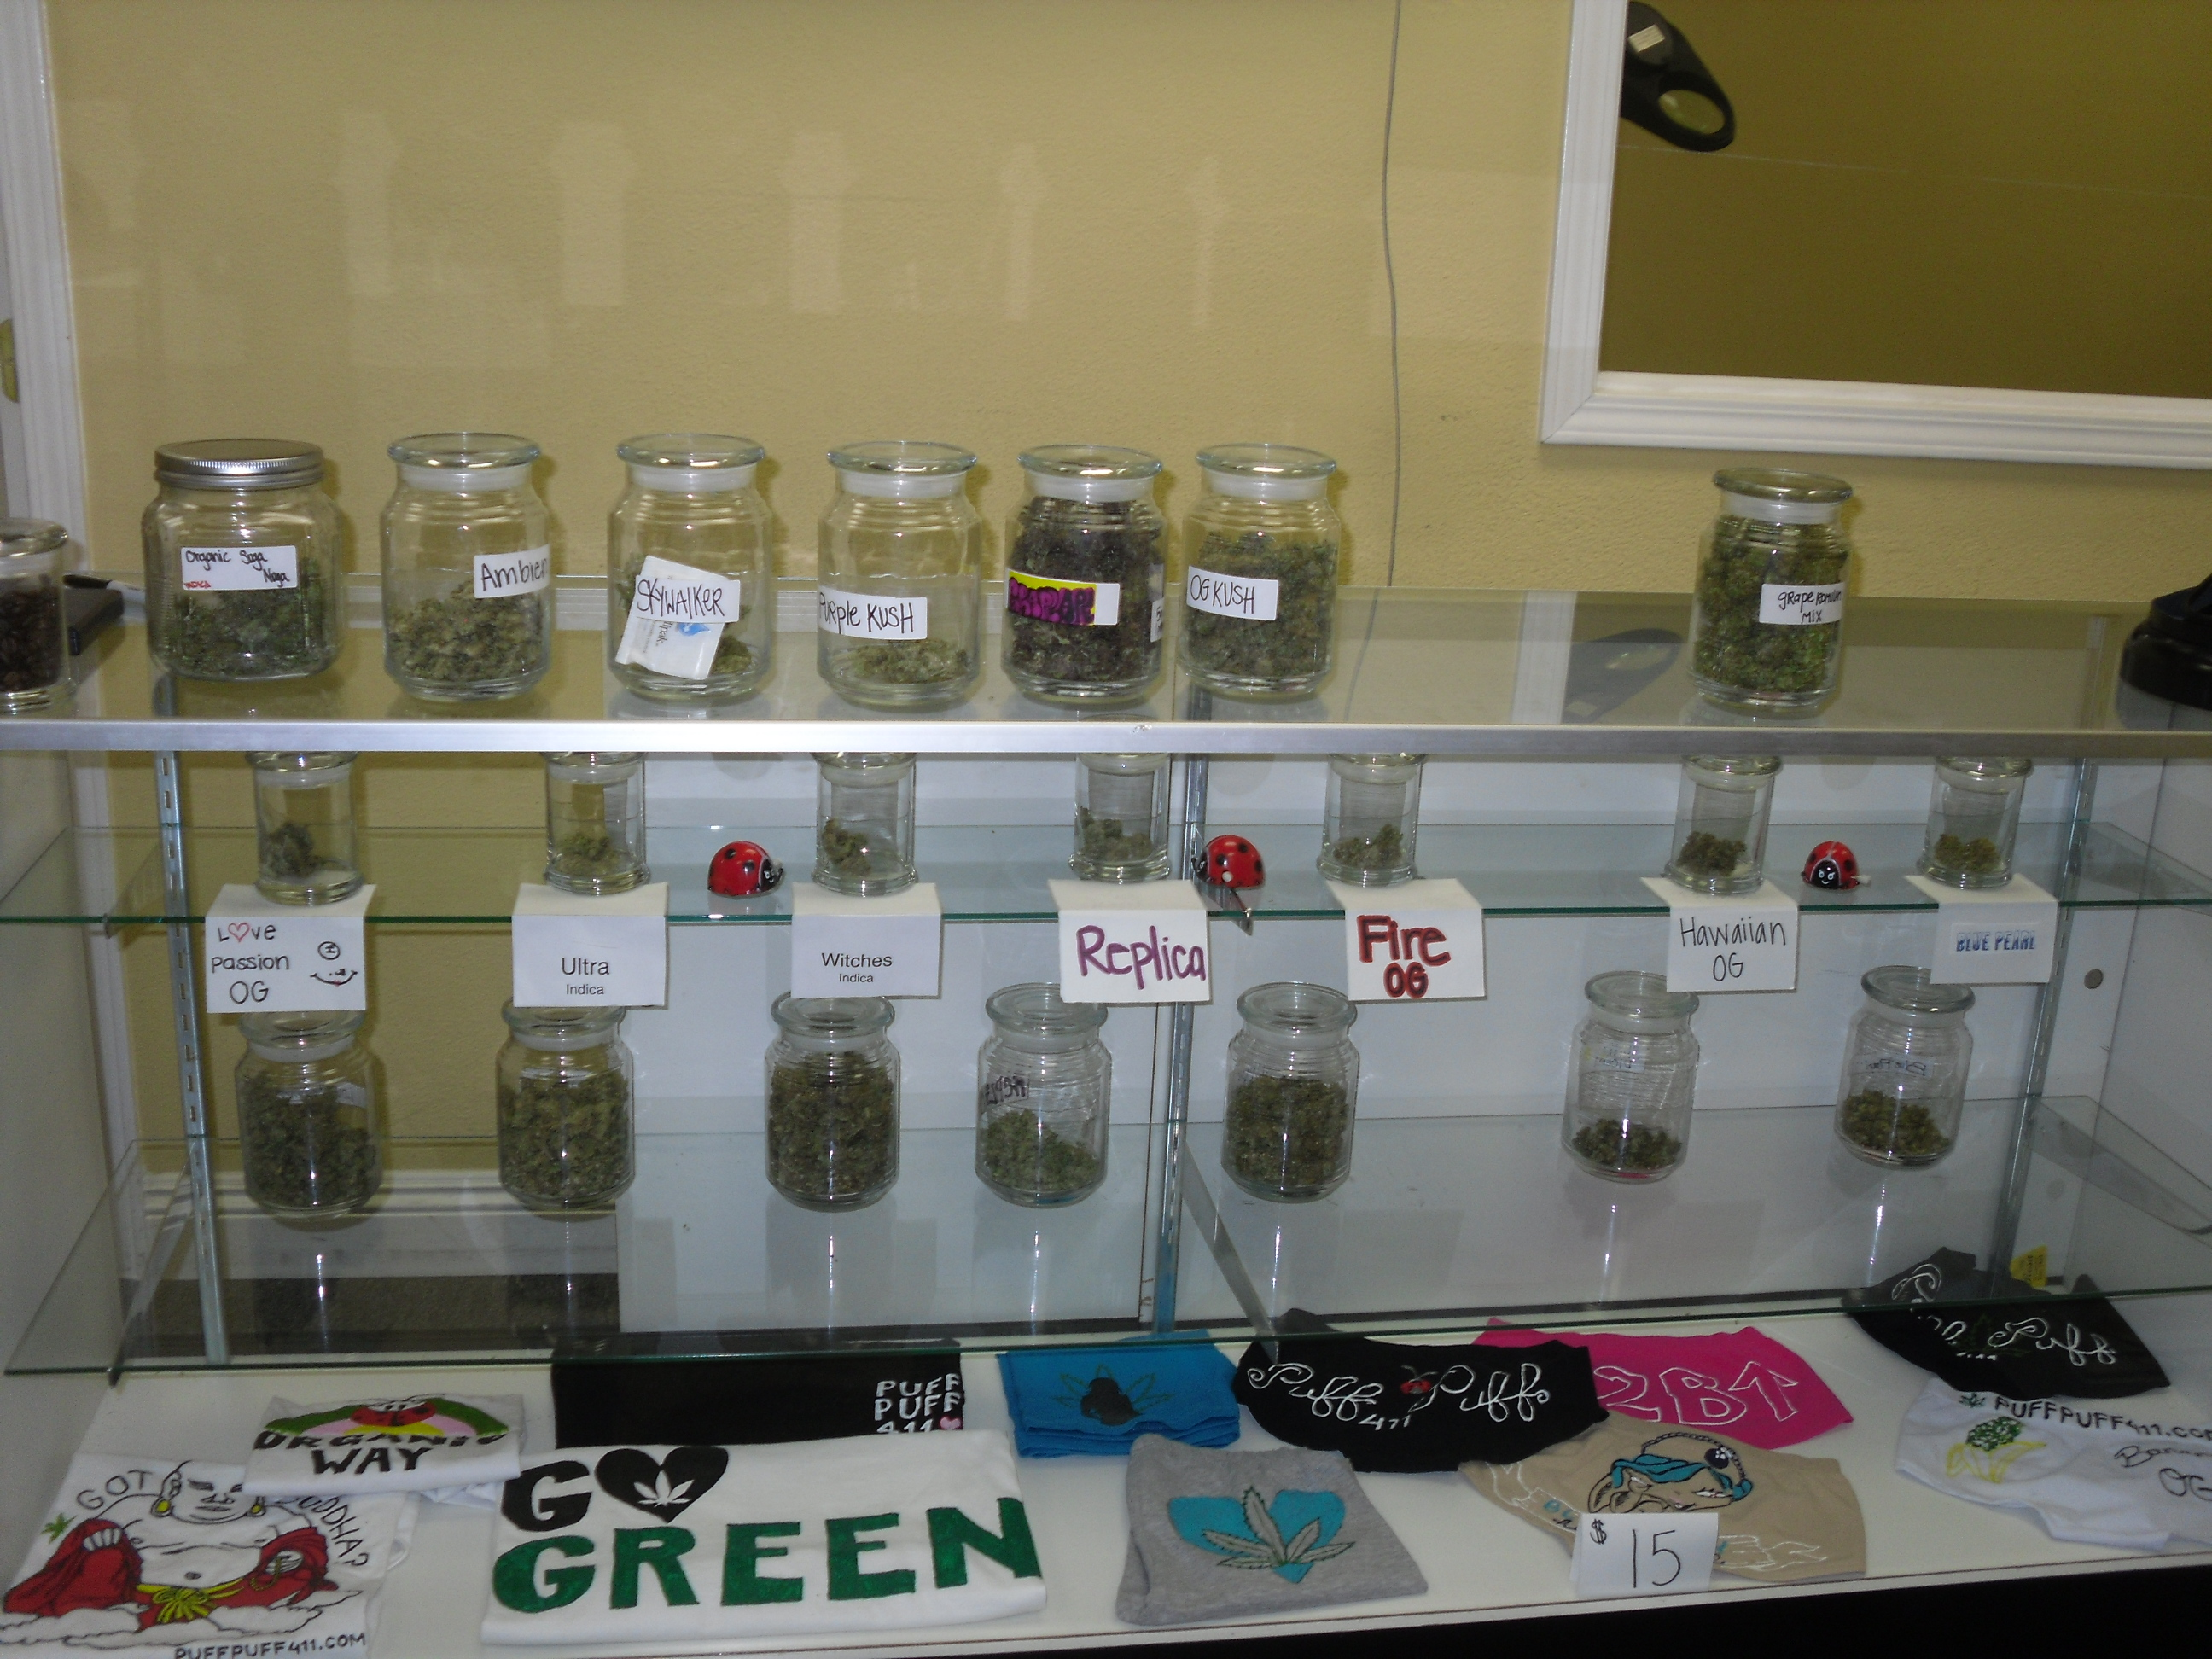 Display case at a Dispensary